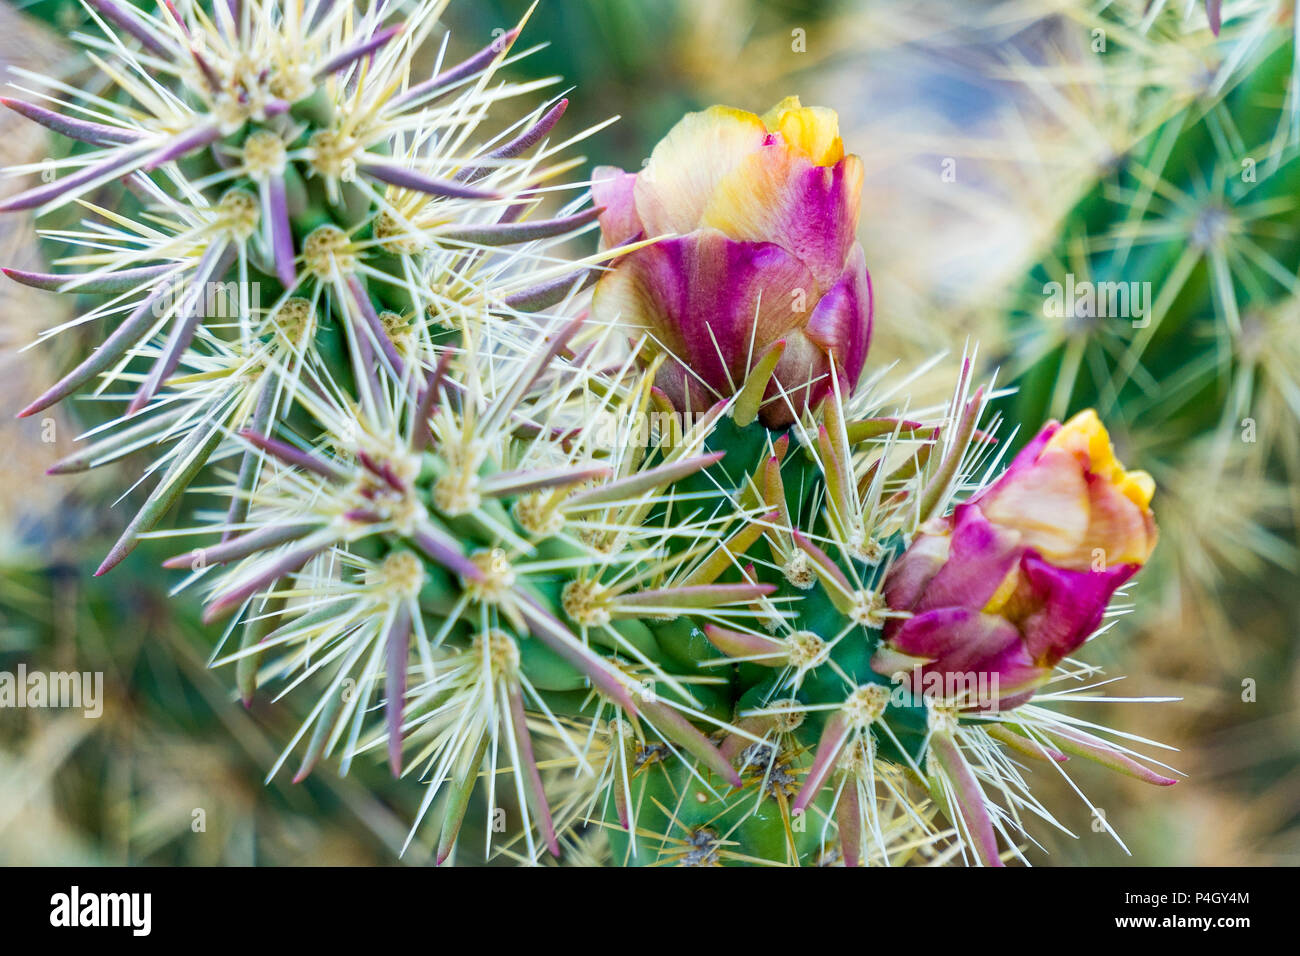 Close up view of purple cholla cactus flowers in the New Water Mountain area south of I10 at Exit 26, east of Quartzsite, Arizona. - Stock Image